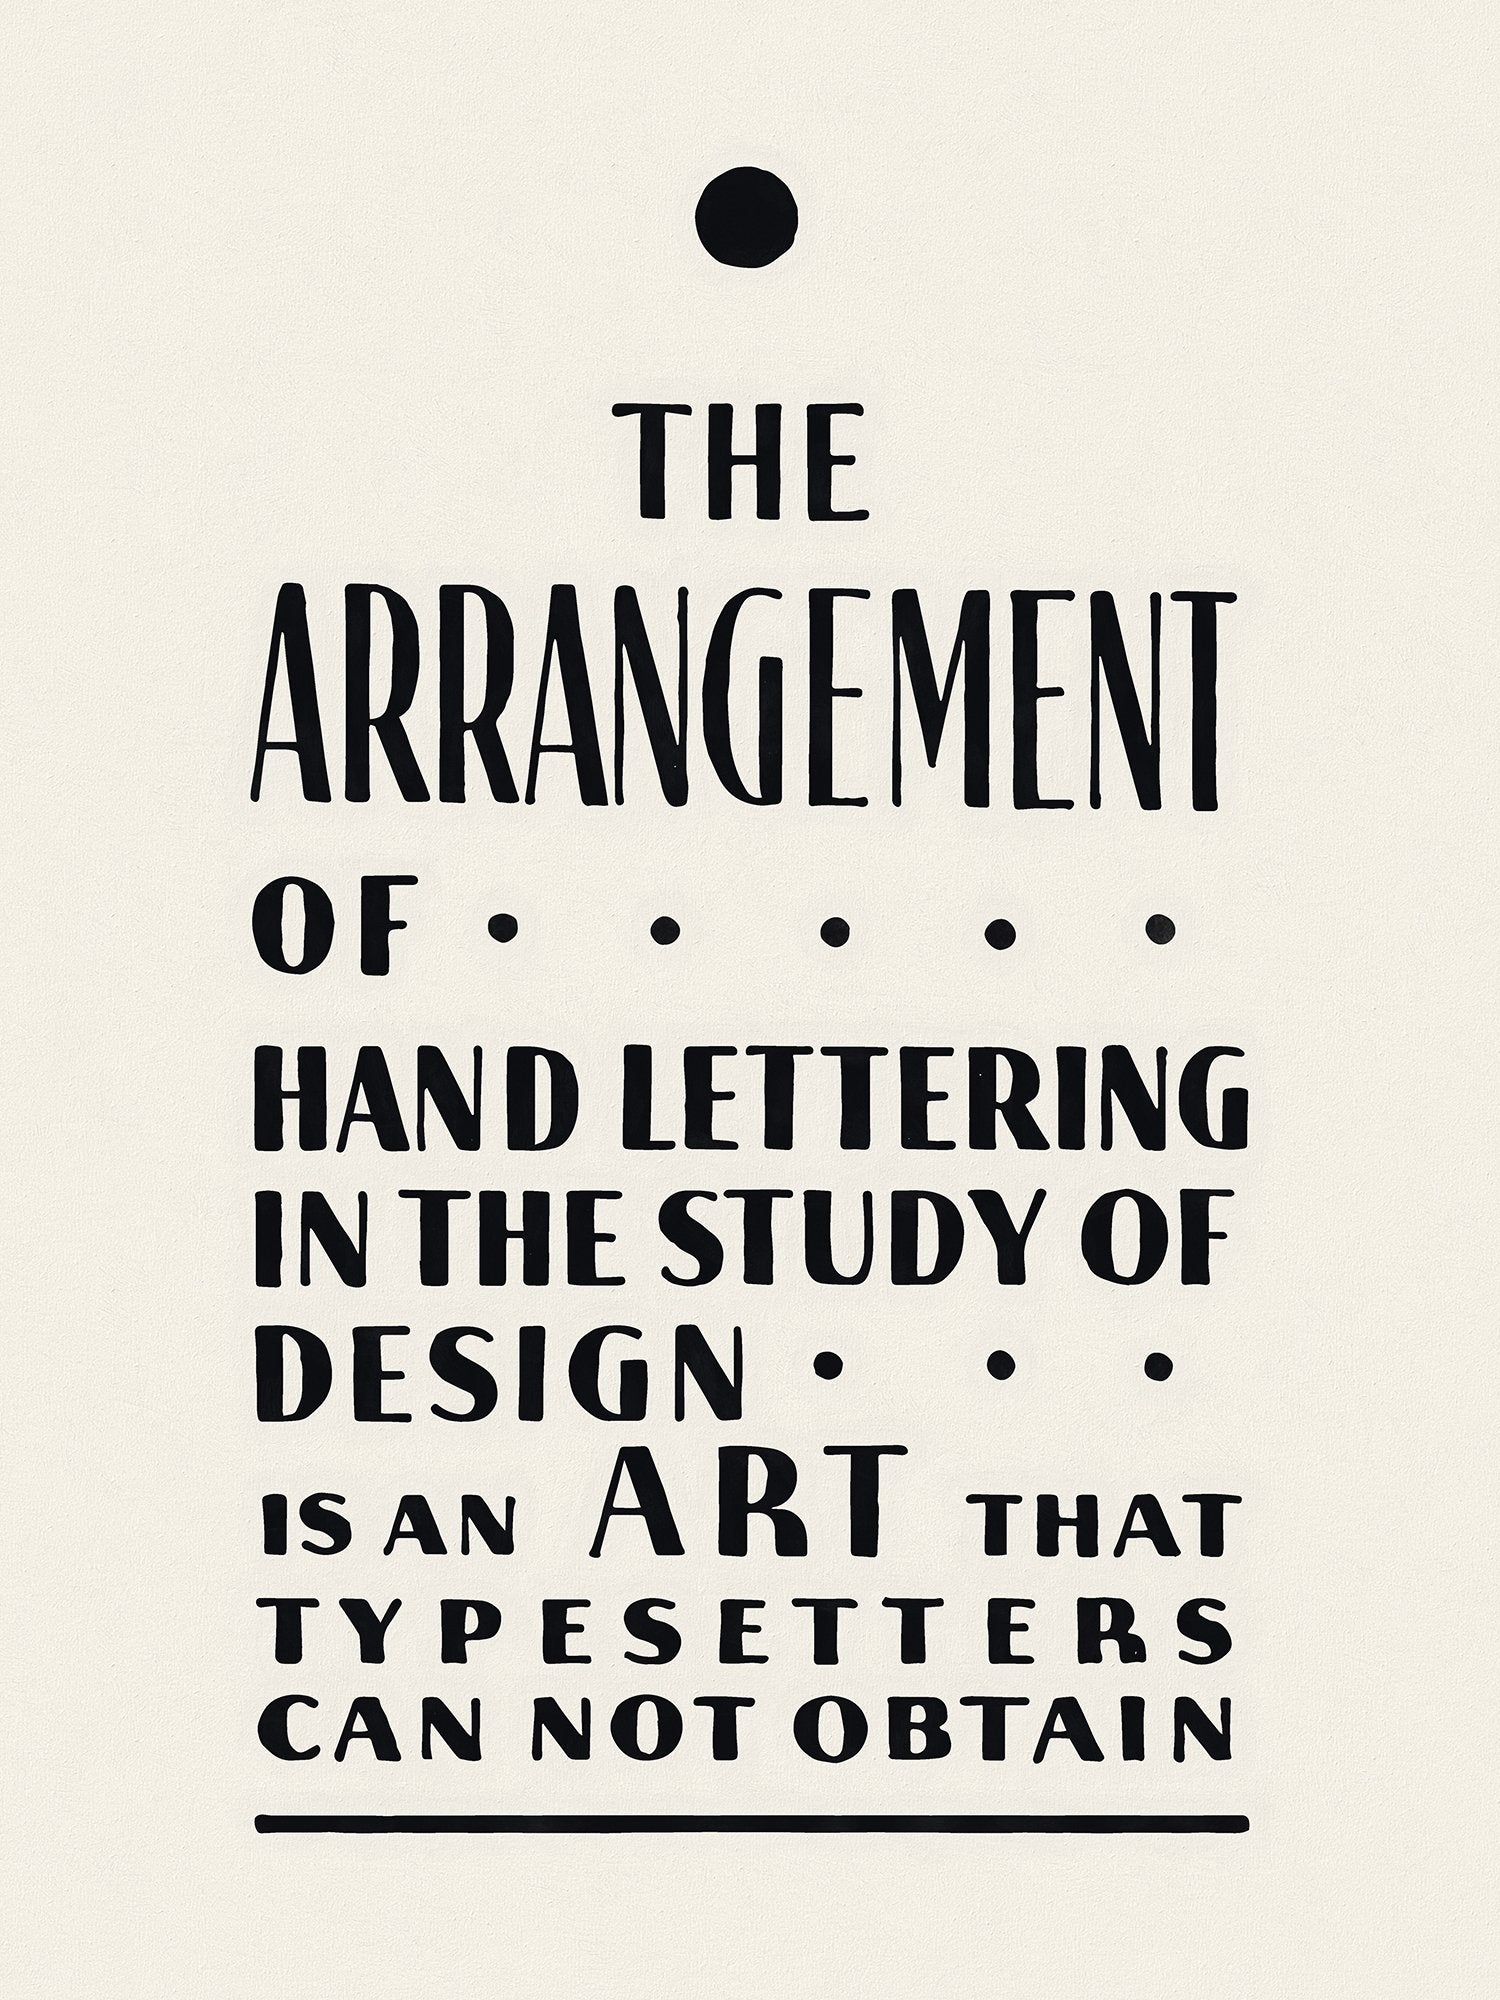 Studio Handbook No. 54, Lettering, Reworked, Series 2